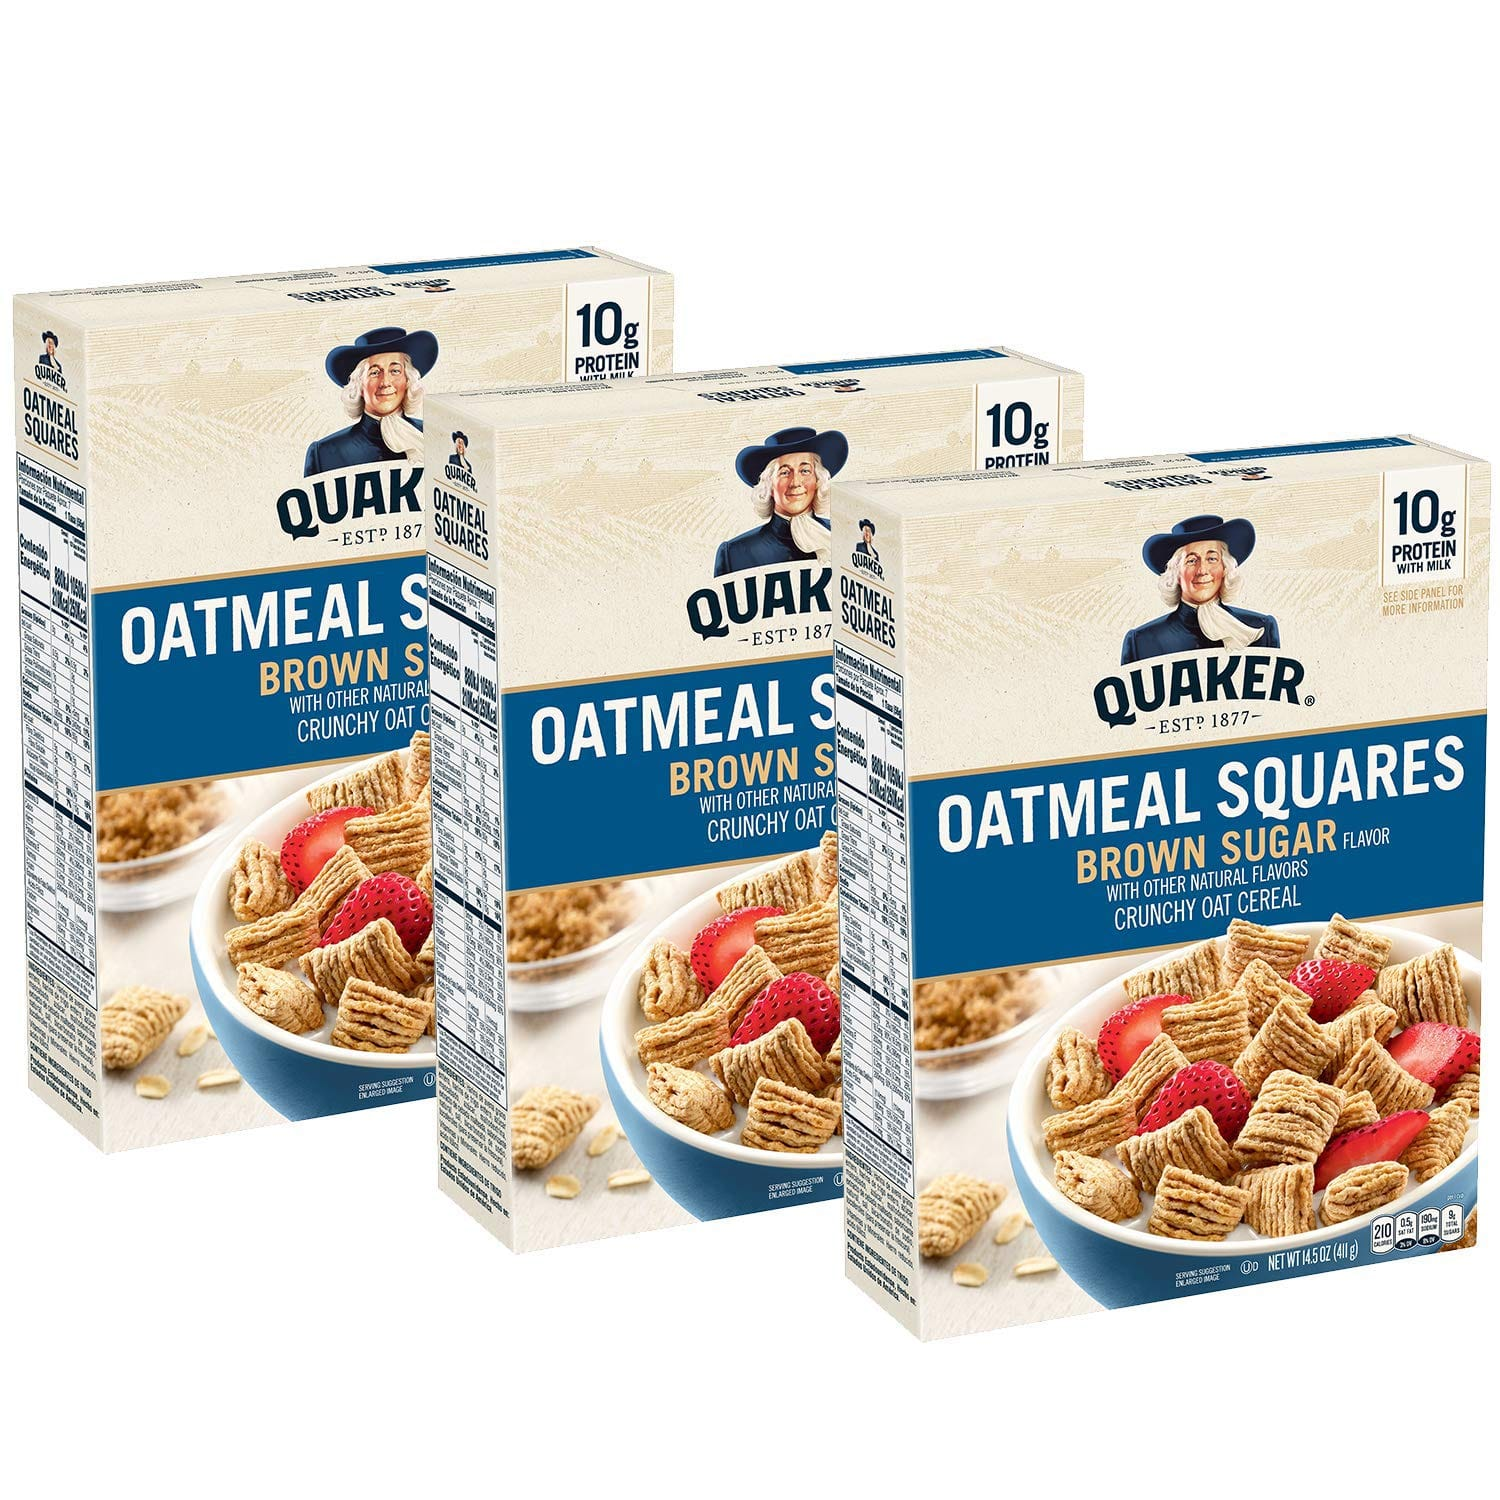 3-Pack 14.5-Oz Quaker Oatmeal Squares Cereal (Brown Sugar) $5.82 ($1.94 each) w/ S&S + Free Shipping w/ Prime or on orders over $25